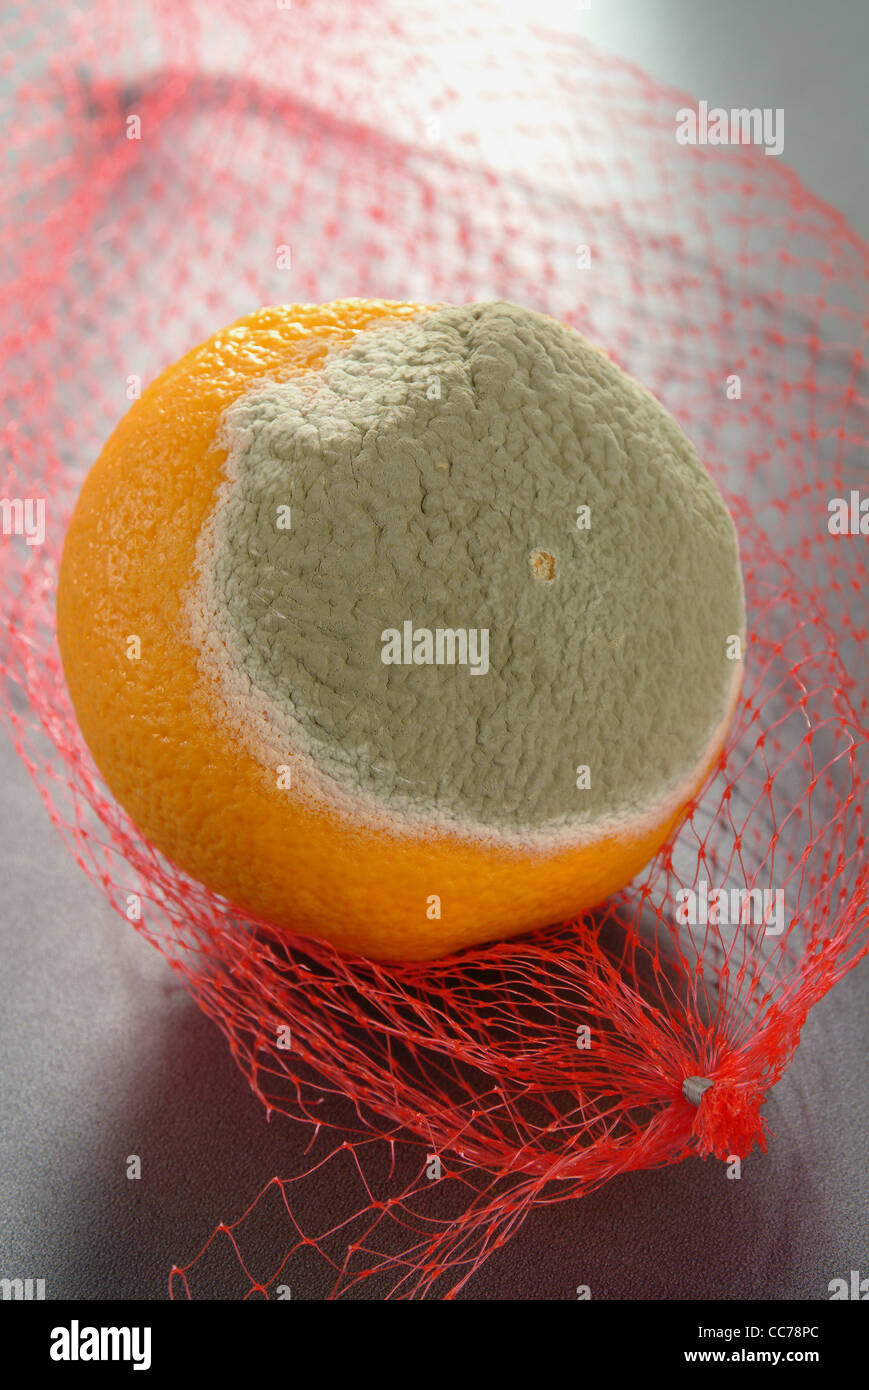 Orange, spoiled with mold on produce bag - Stock Image